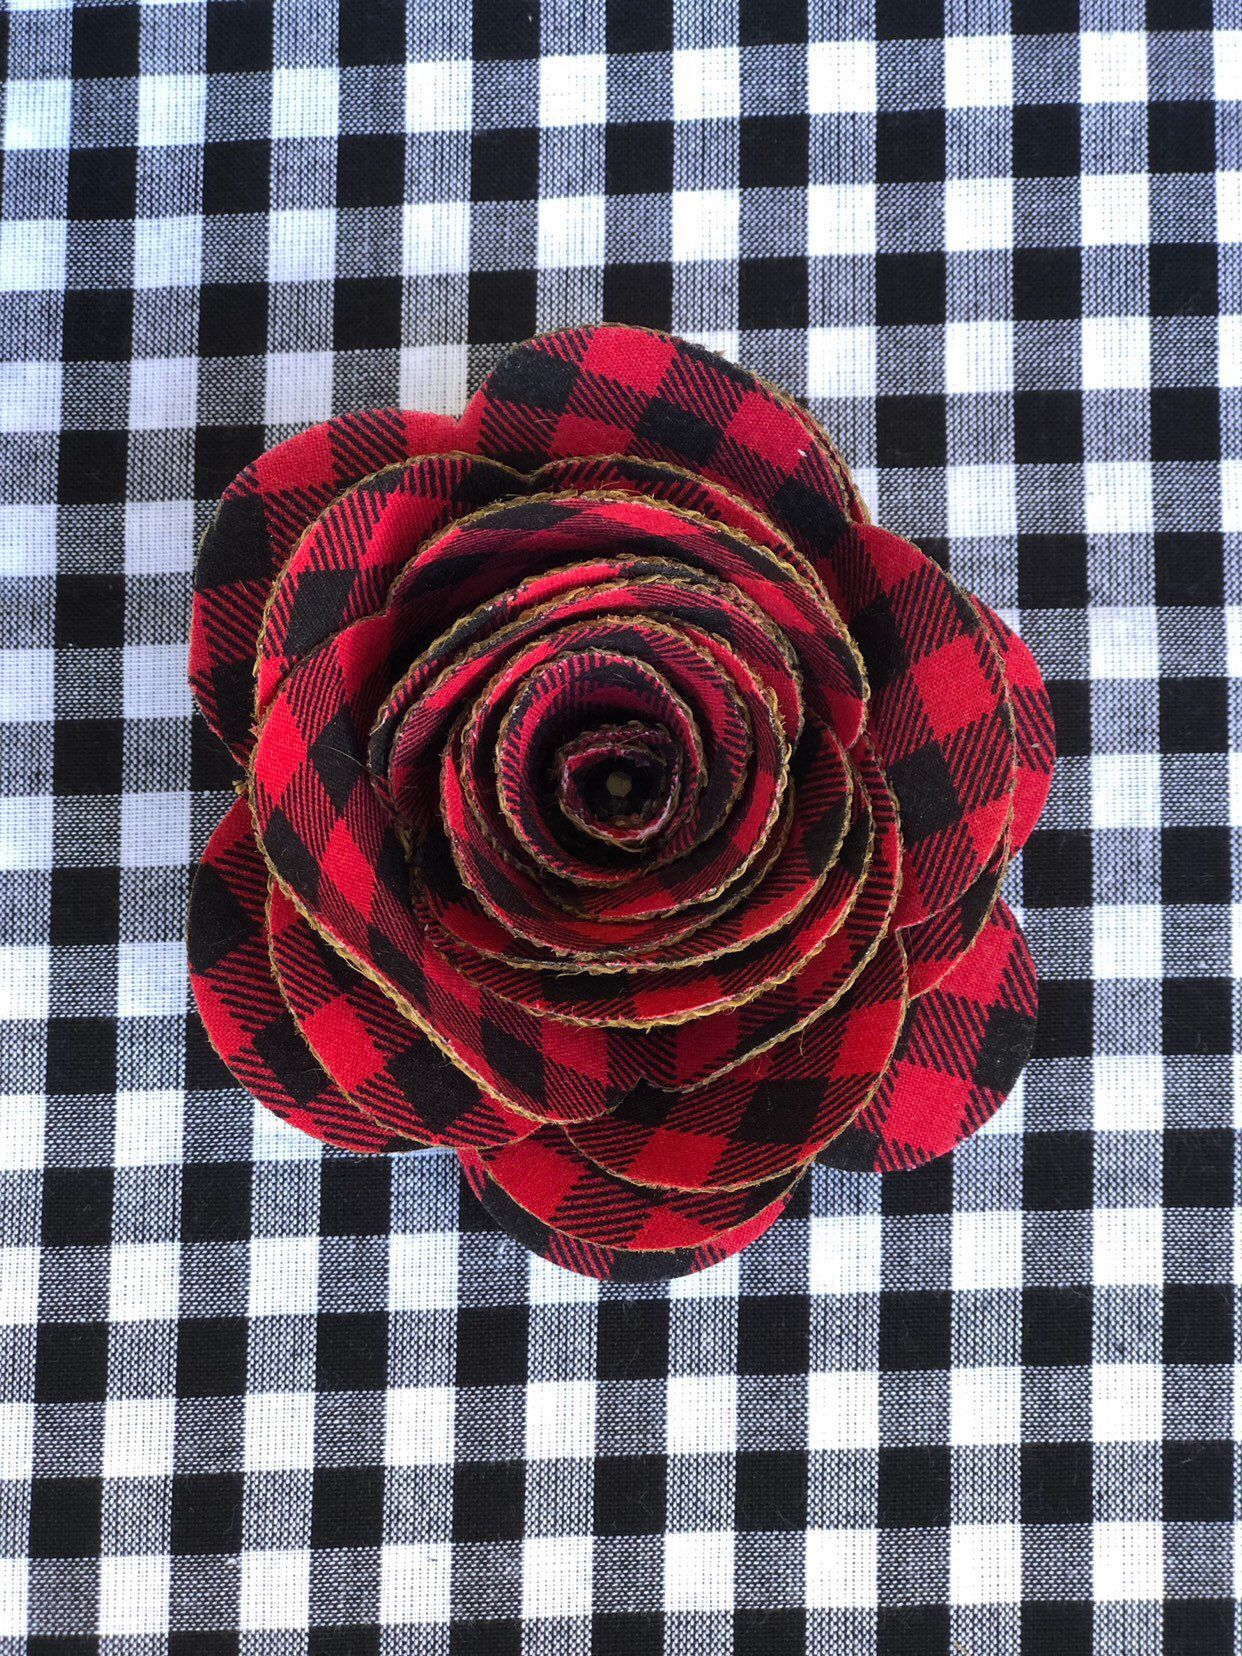 Red And Black Buffalo Plaid Flowers Buffalo Check Flowers Etsy In 2020 Rustic Flowers Rustic Wedding Flowers Buffalo Plaid Baby Shower